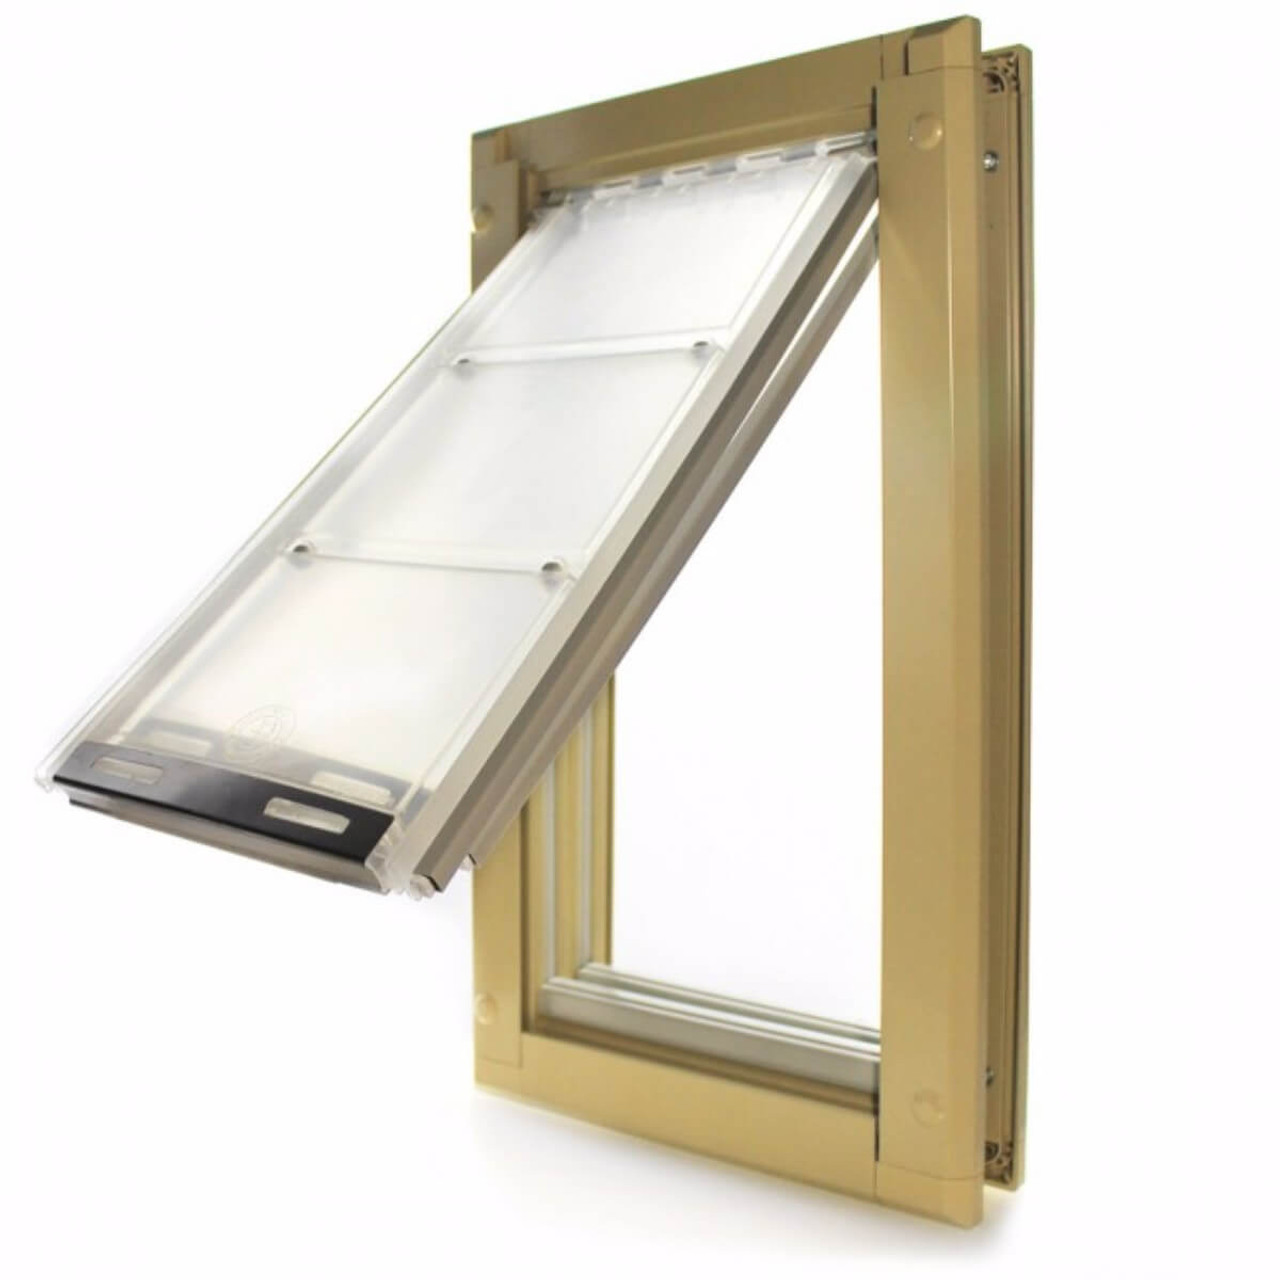 Merveilleux Endura Flap Pet Doors With Double Flaps Are Extremely Weather Tight And Can  Be Used In